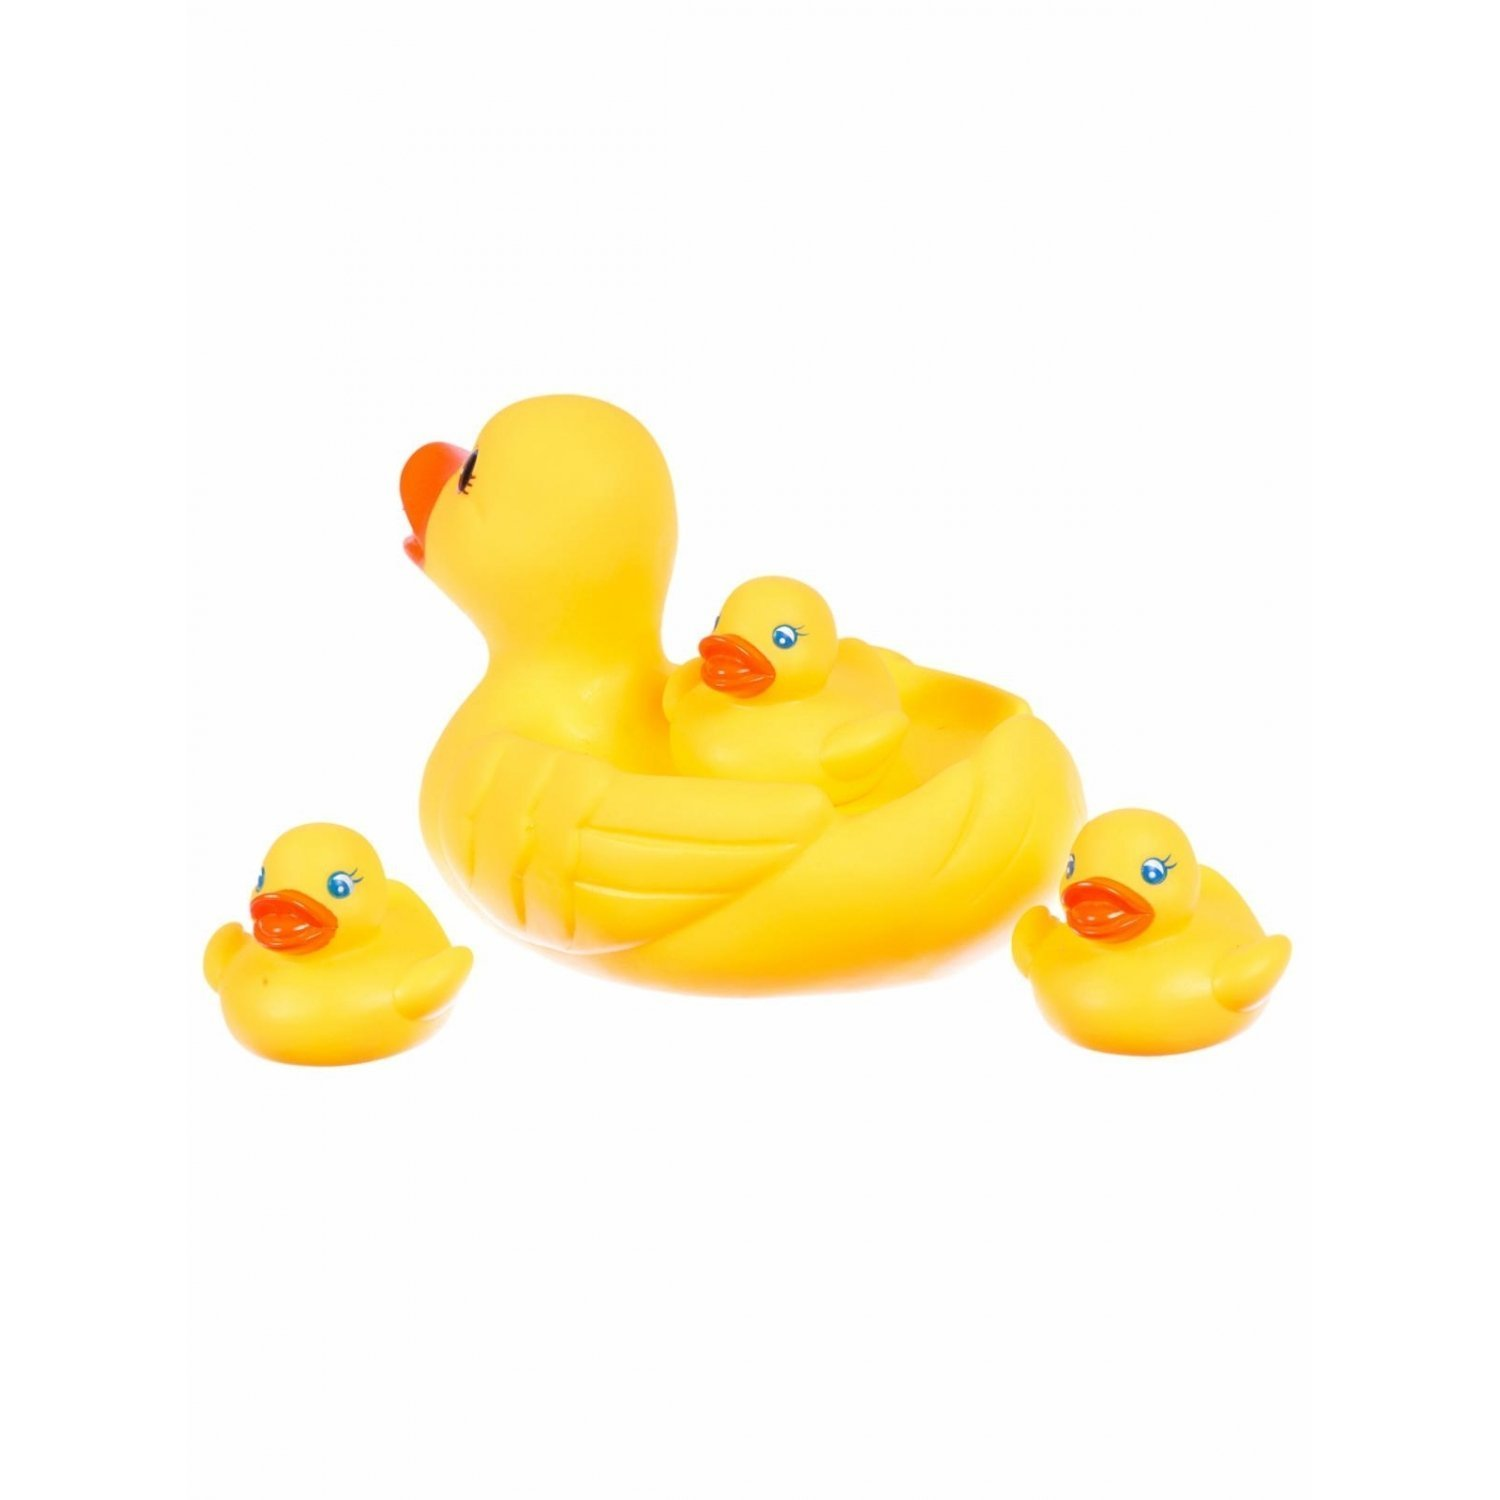 Buy My Angel Rubber Duckies Bath Toys, Multi Color (Set of 4 ...